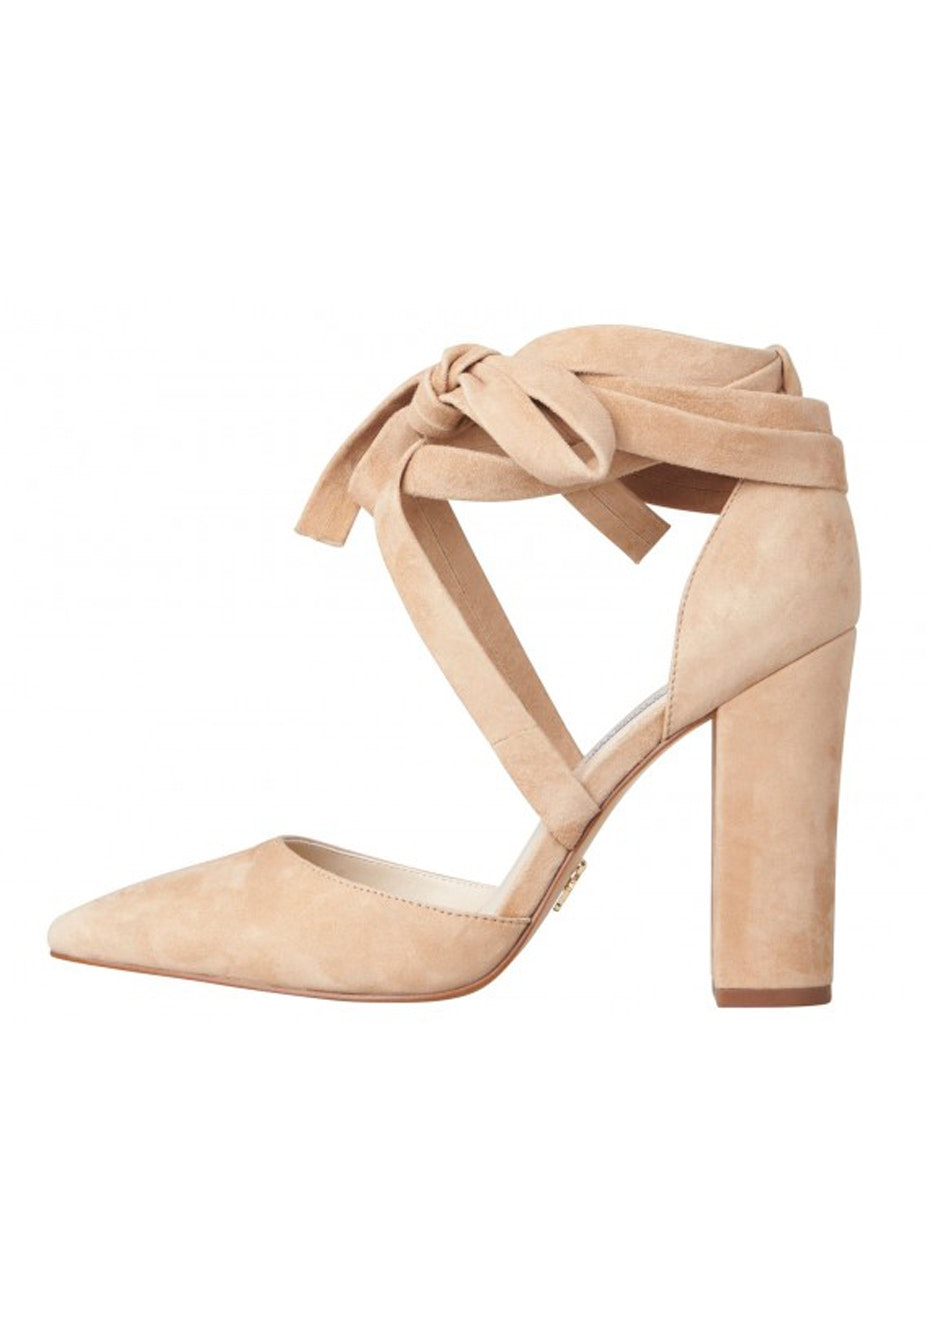 Windsor Smith - Bryony - Camel Suede